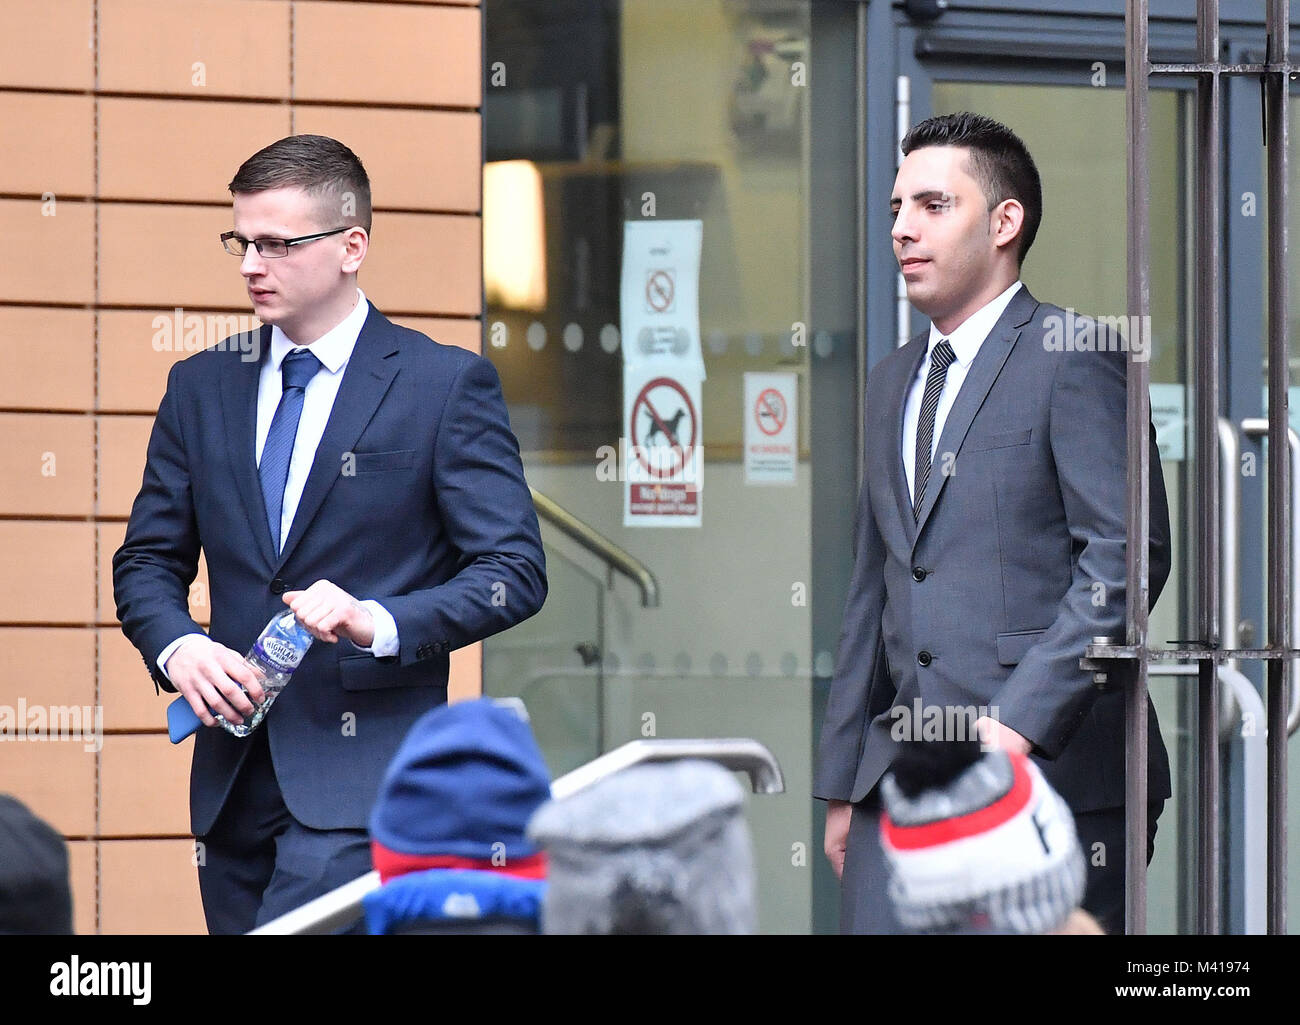 Ryan Hale (left) and Ryan Ali leaving Bristol Magistrates' Court, where they and England and Durham cricketer - Stock Image